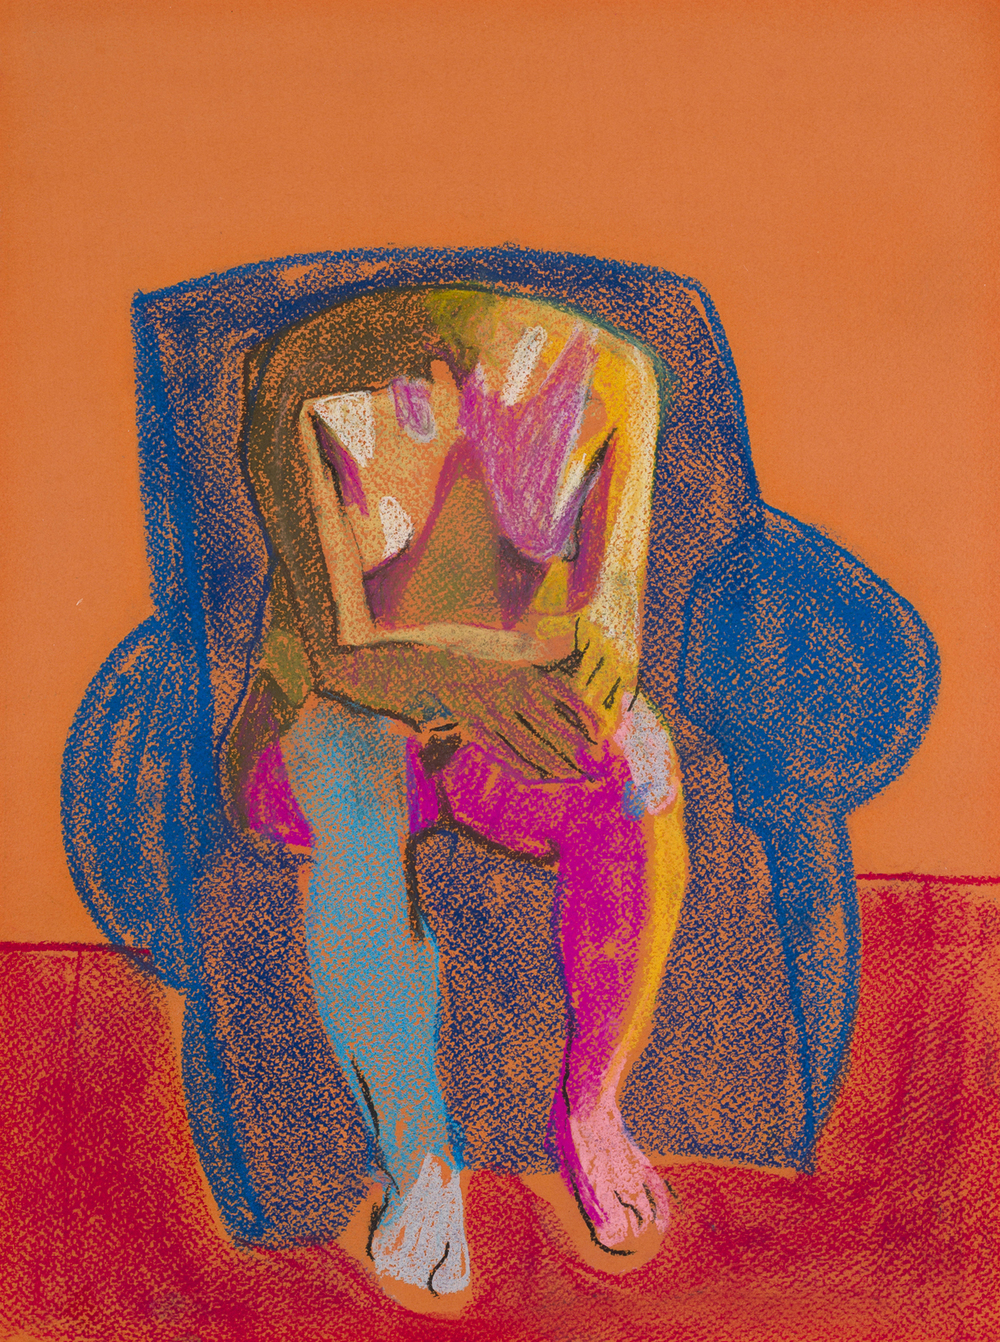 Headless Nude (Seated, Orange/Blue/Red), 2015, pastel on paper, 16 x 12in